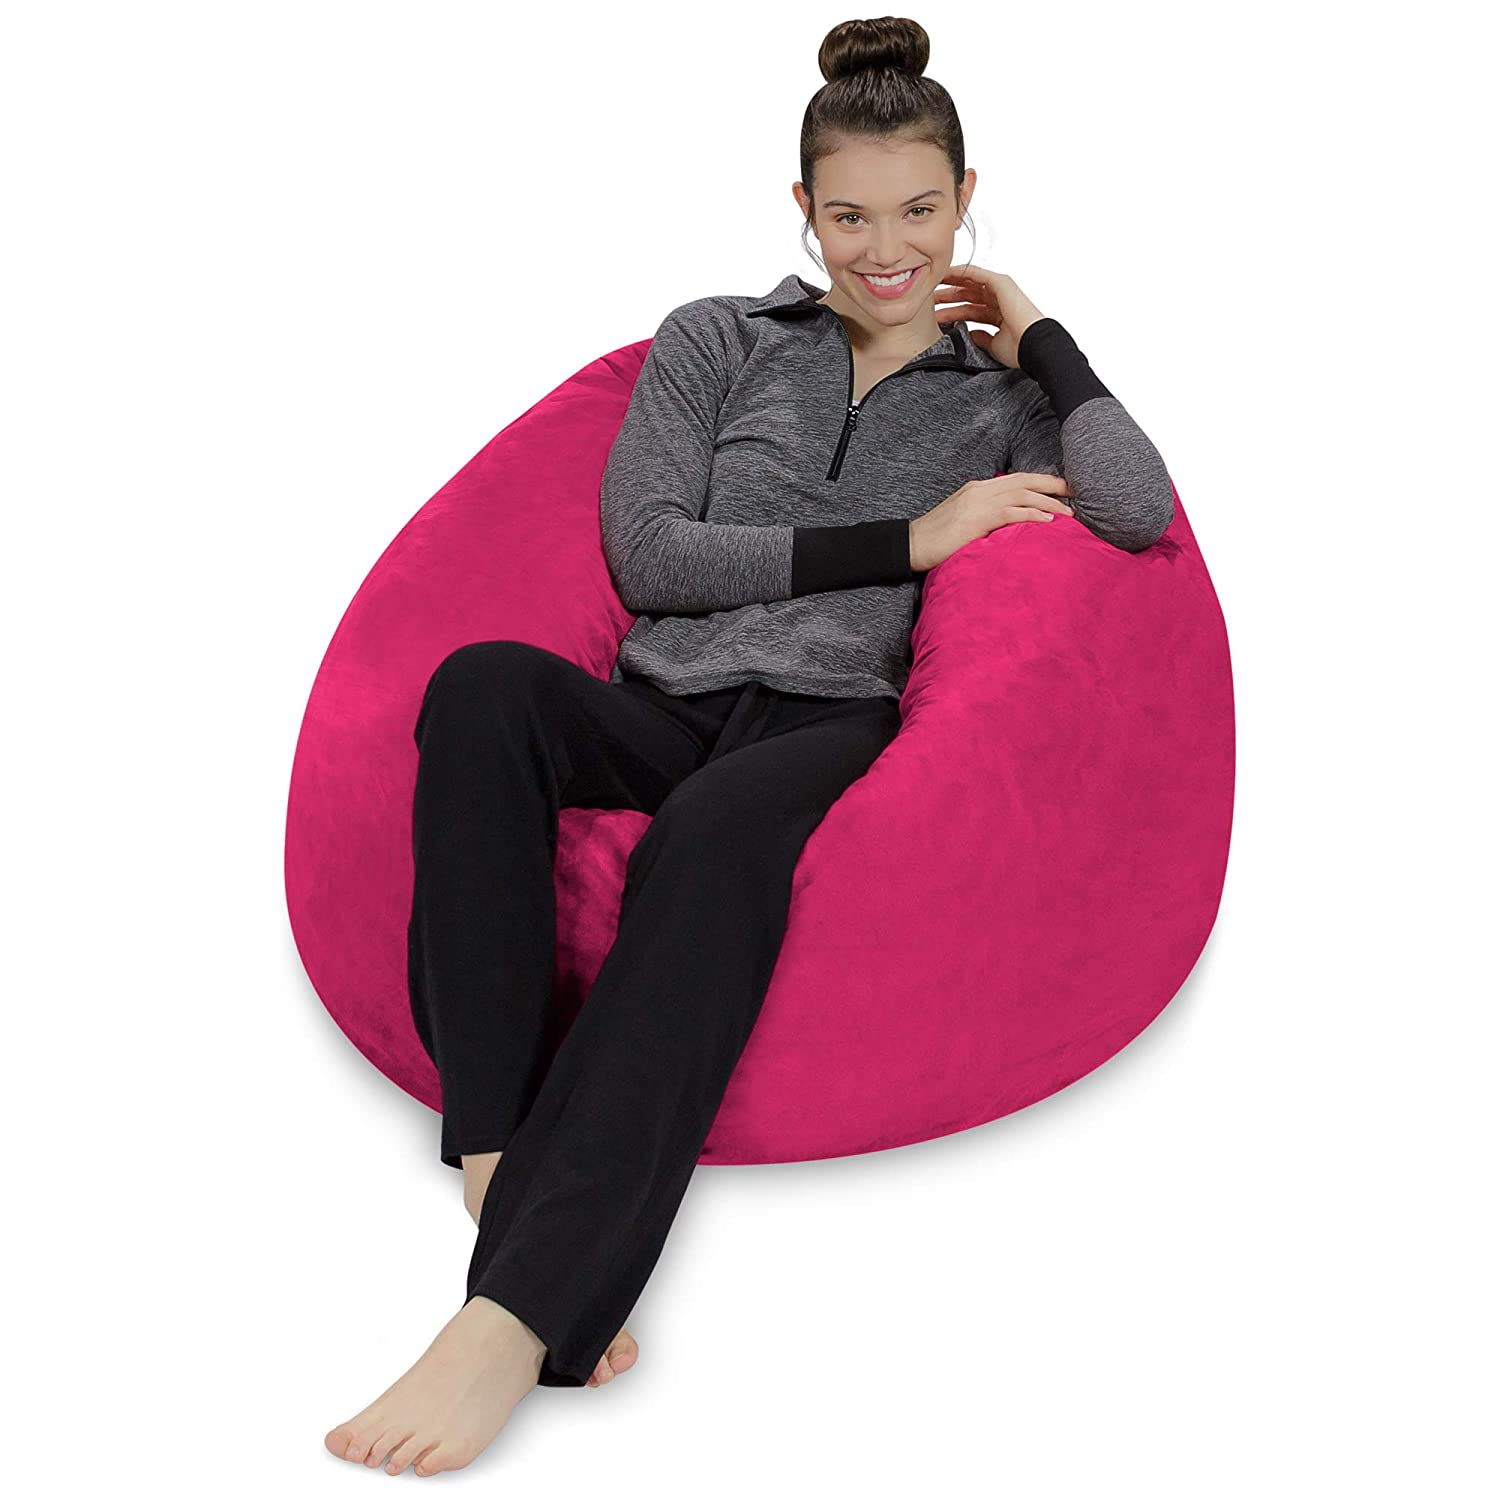 Sofa Sack – Plush, Ultra Soft Bean Bag Chair – Memory Foam Bean Bag Chair with Microsuede Cover – Stuffed Foam Filled Furniture and Accessories for Dorm Room – Magenta 3